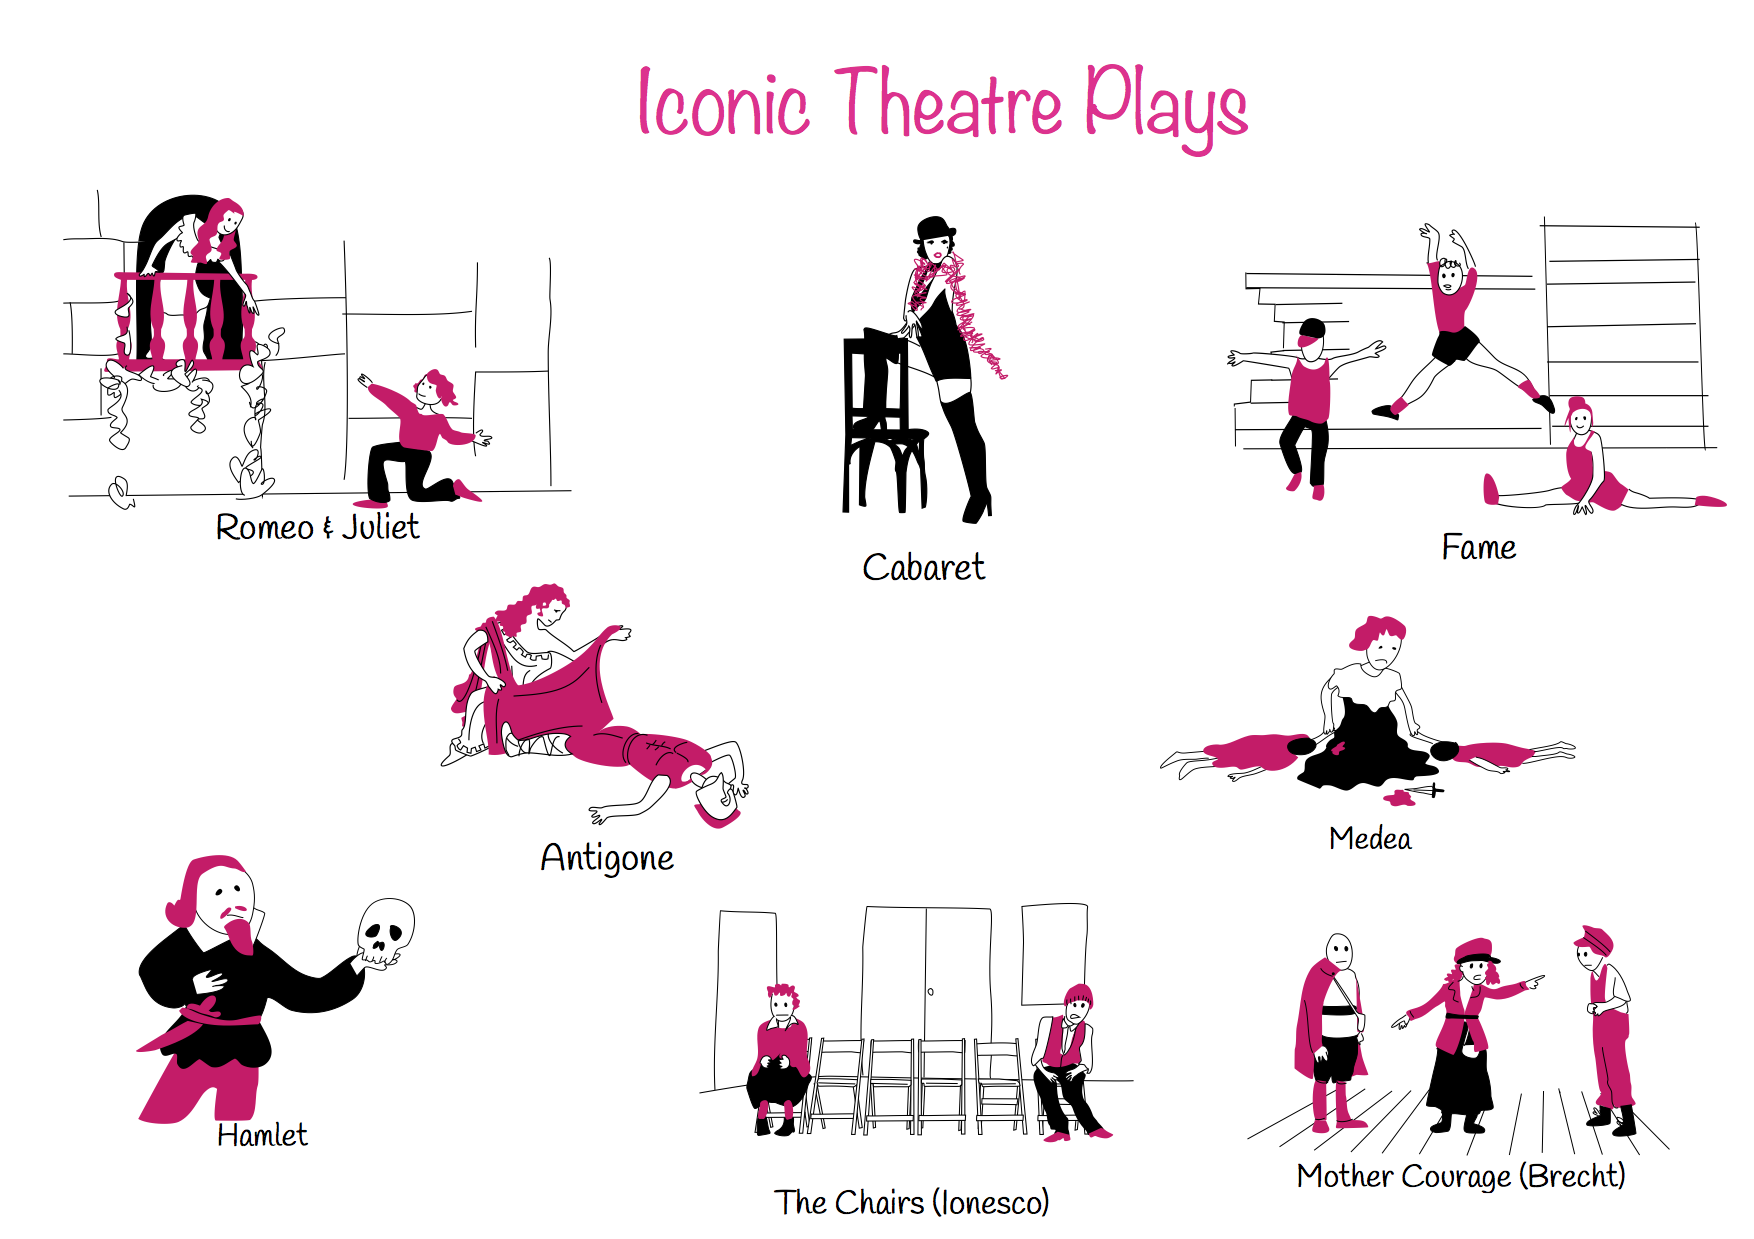 Theme 10: Iconic Theatre Plays